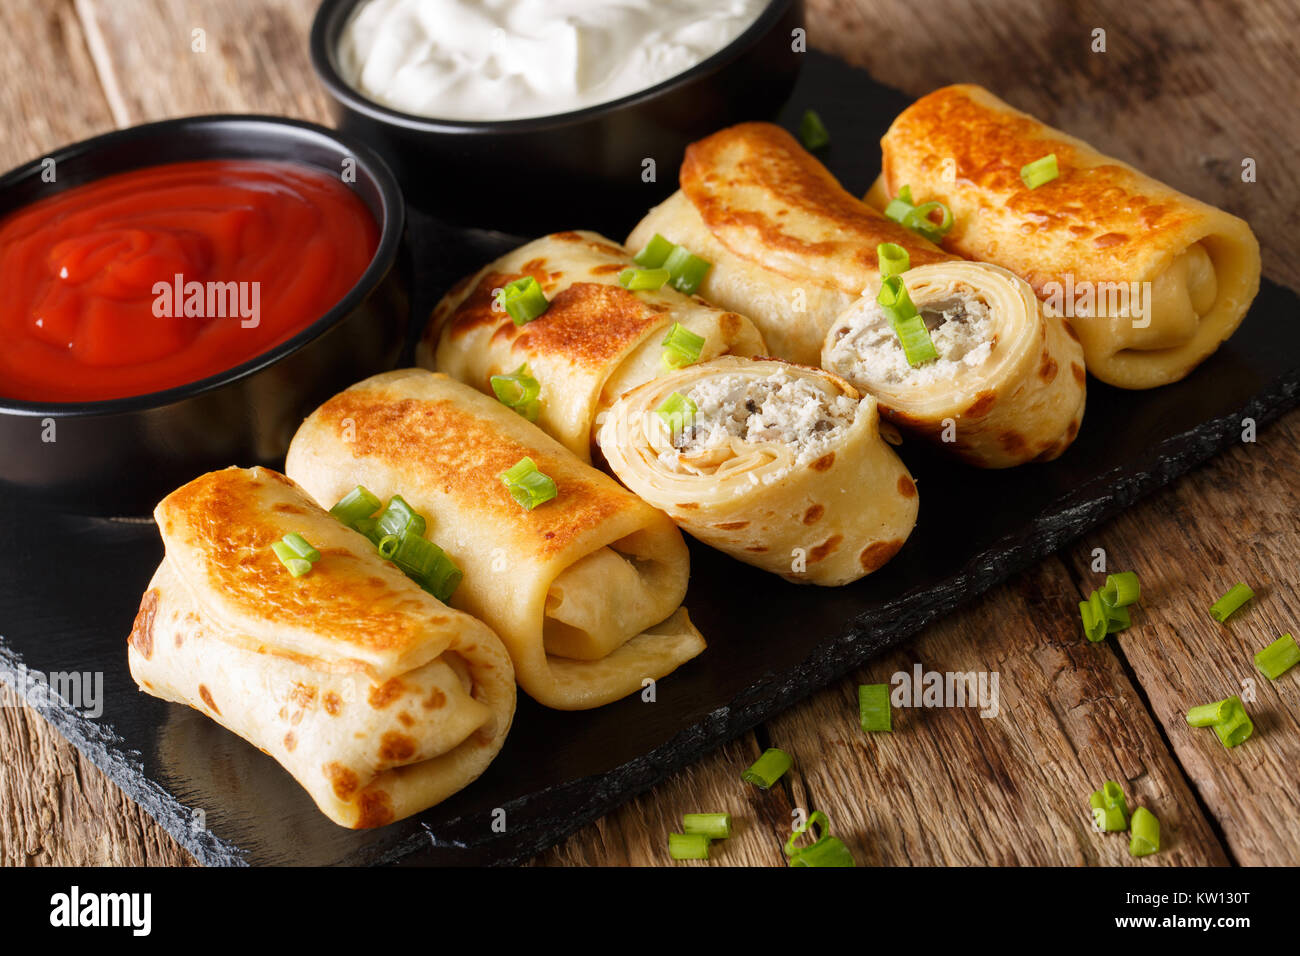 Pancakes rolls stuffed with chicken and mushrooms close-up and tomato sauce, sour cream on the table. horizontal - Stock Image